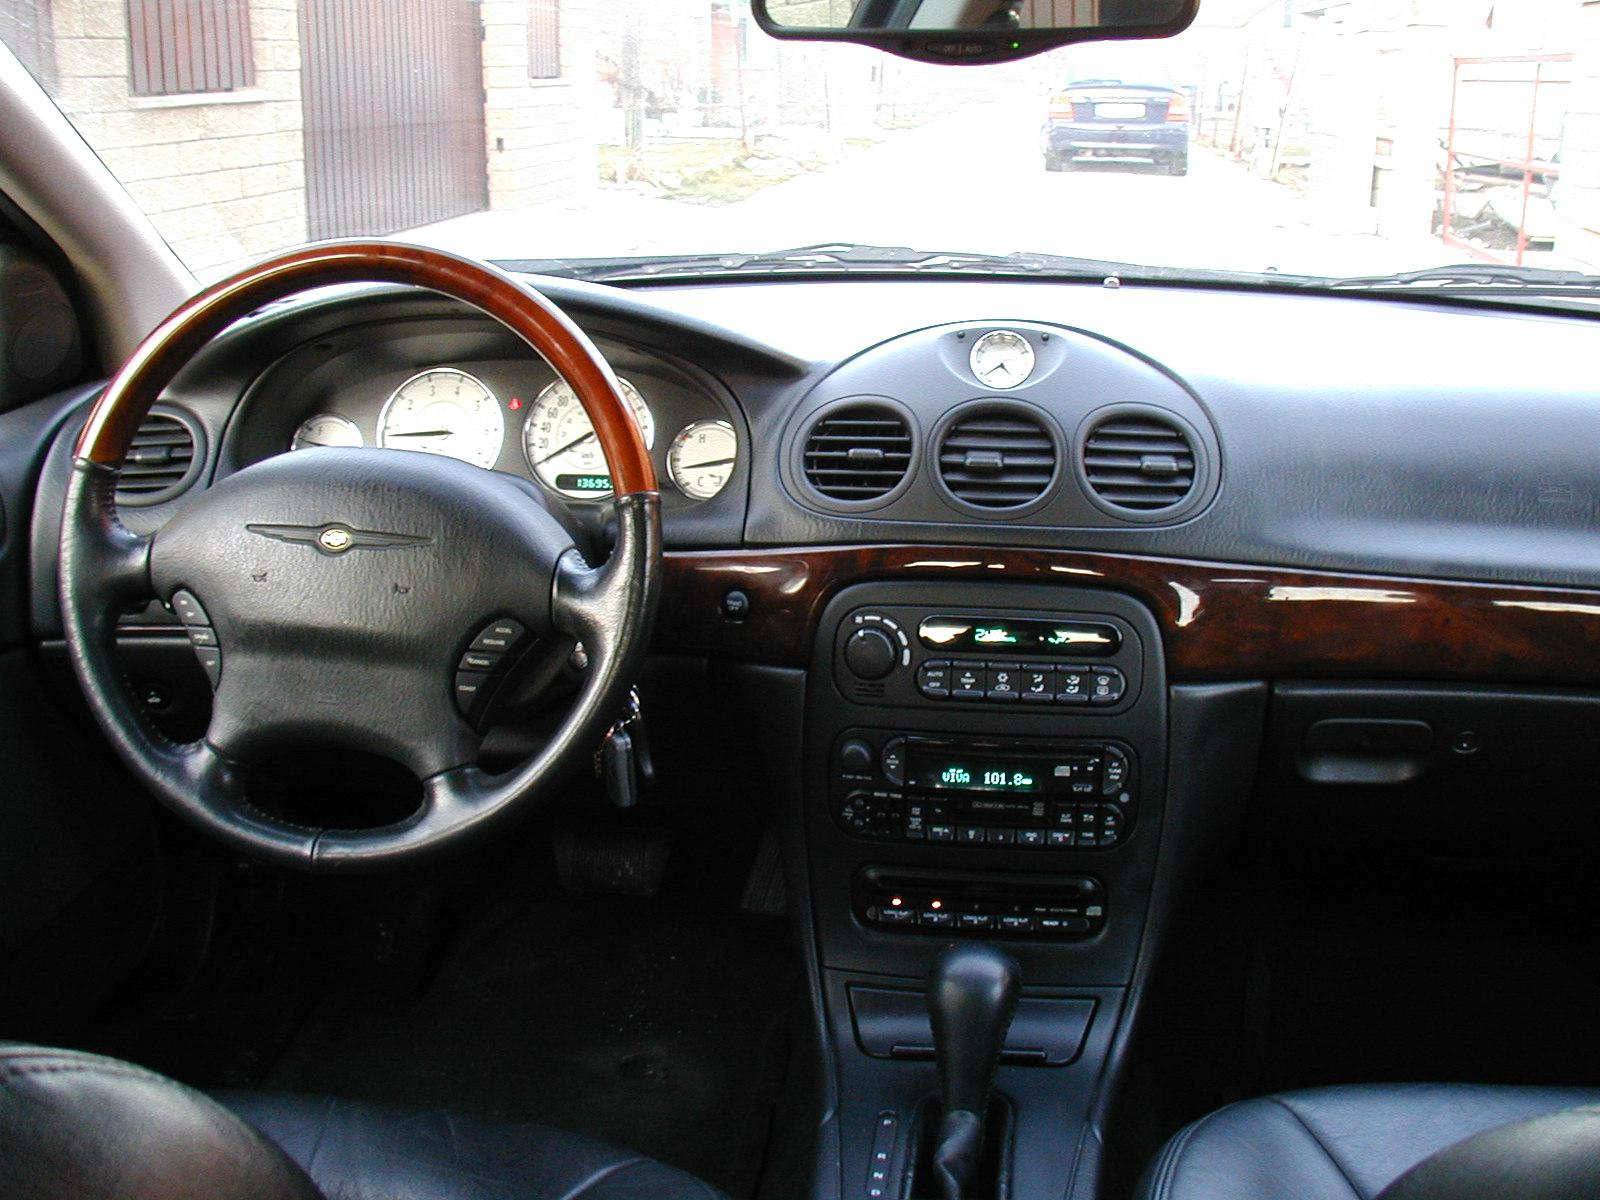 2002 Chrysler 300m #16